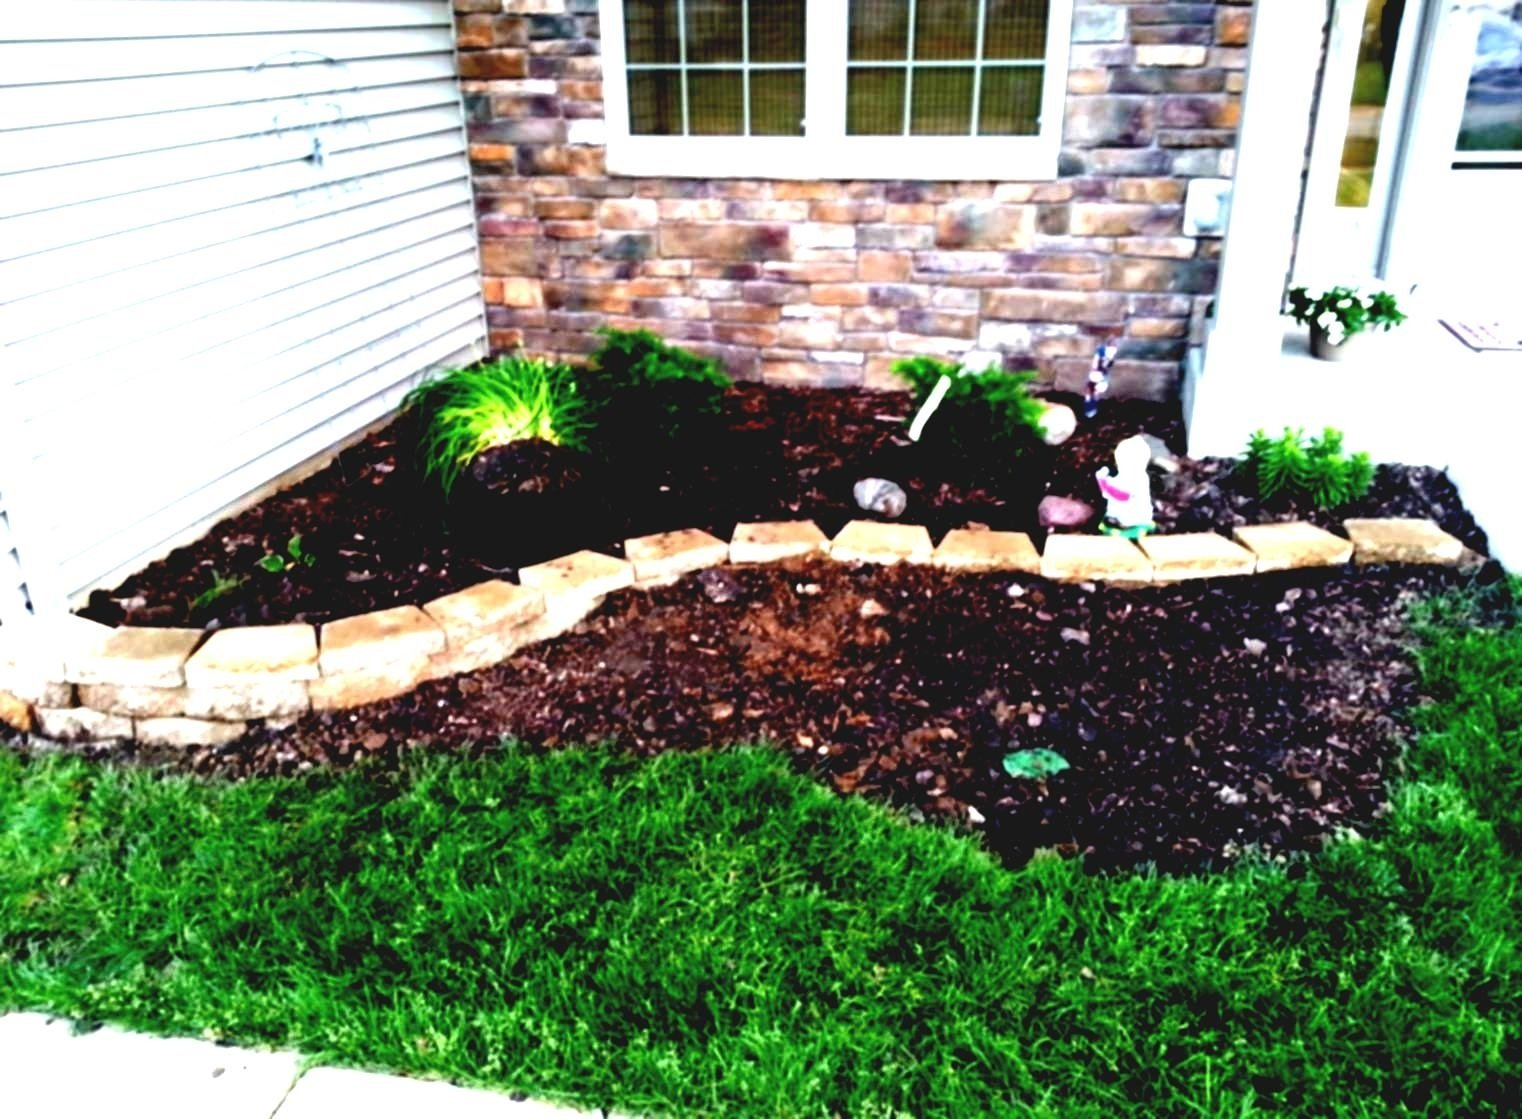 10 Attractive Landscaping Ideas For Small Areas front yard landscaping ideas small area on budget a goodhomez for 2021